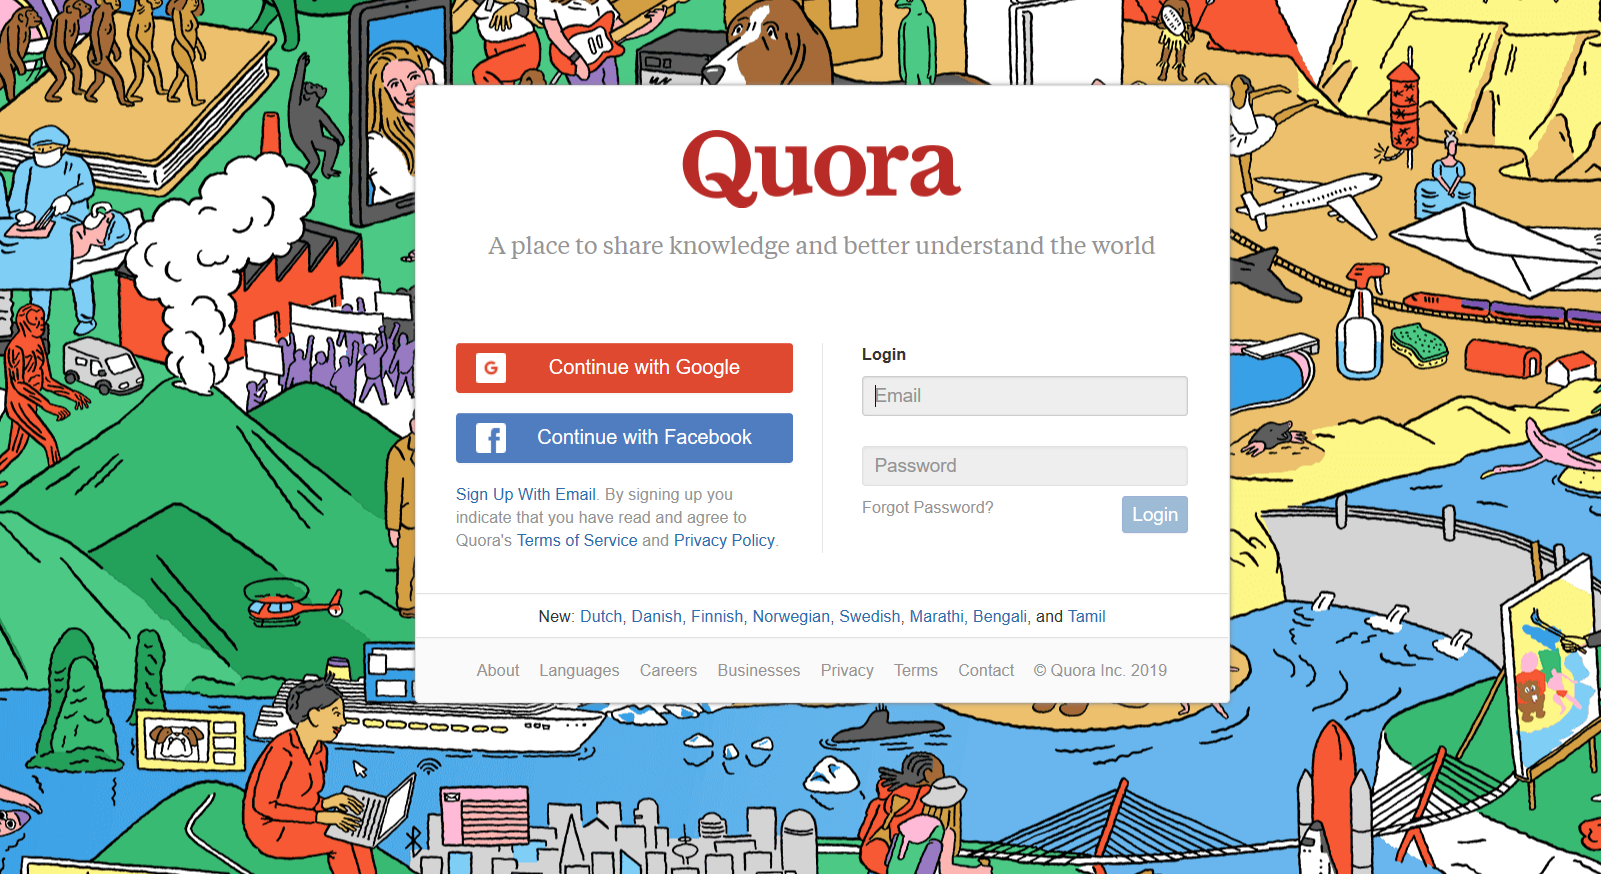 How to Find Awesome, New Content Ideas Using Quora in 2019